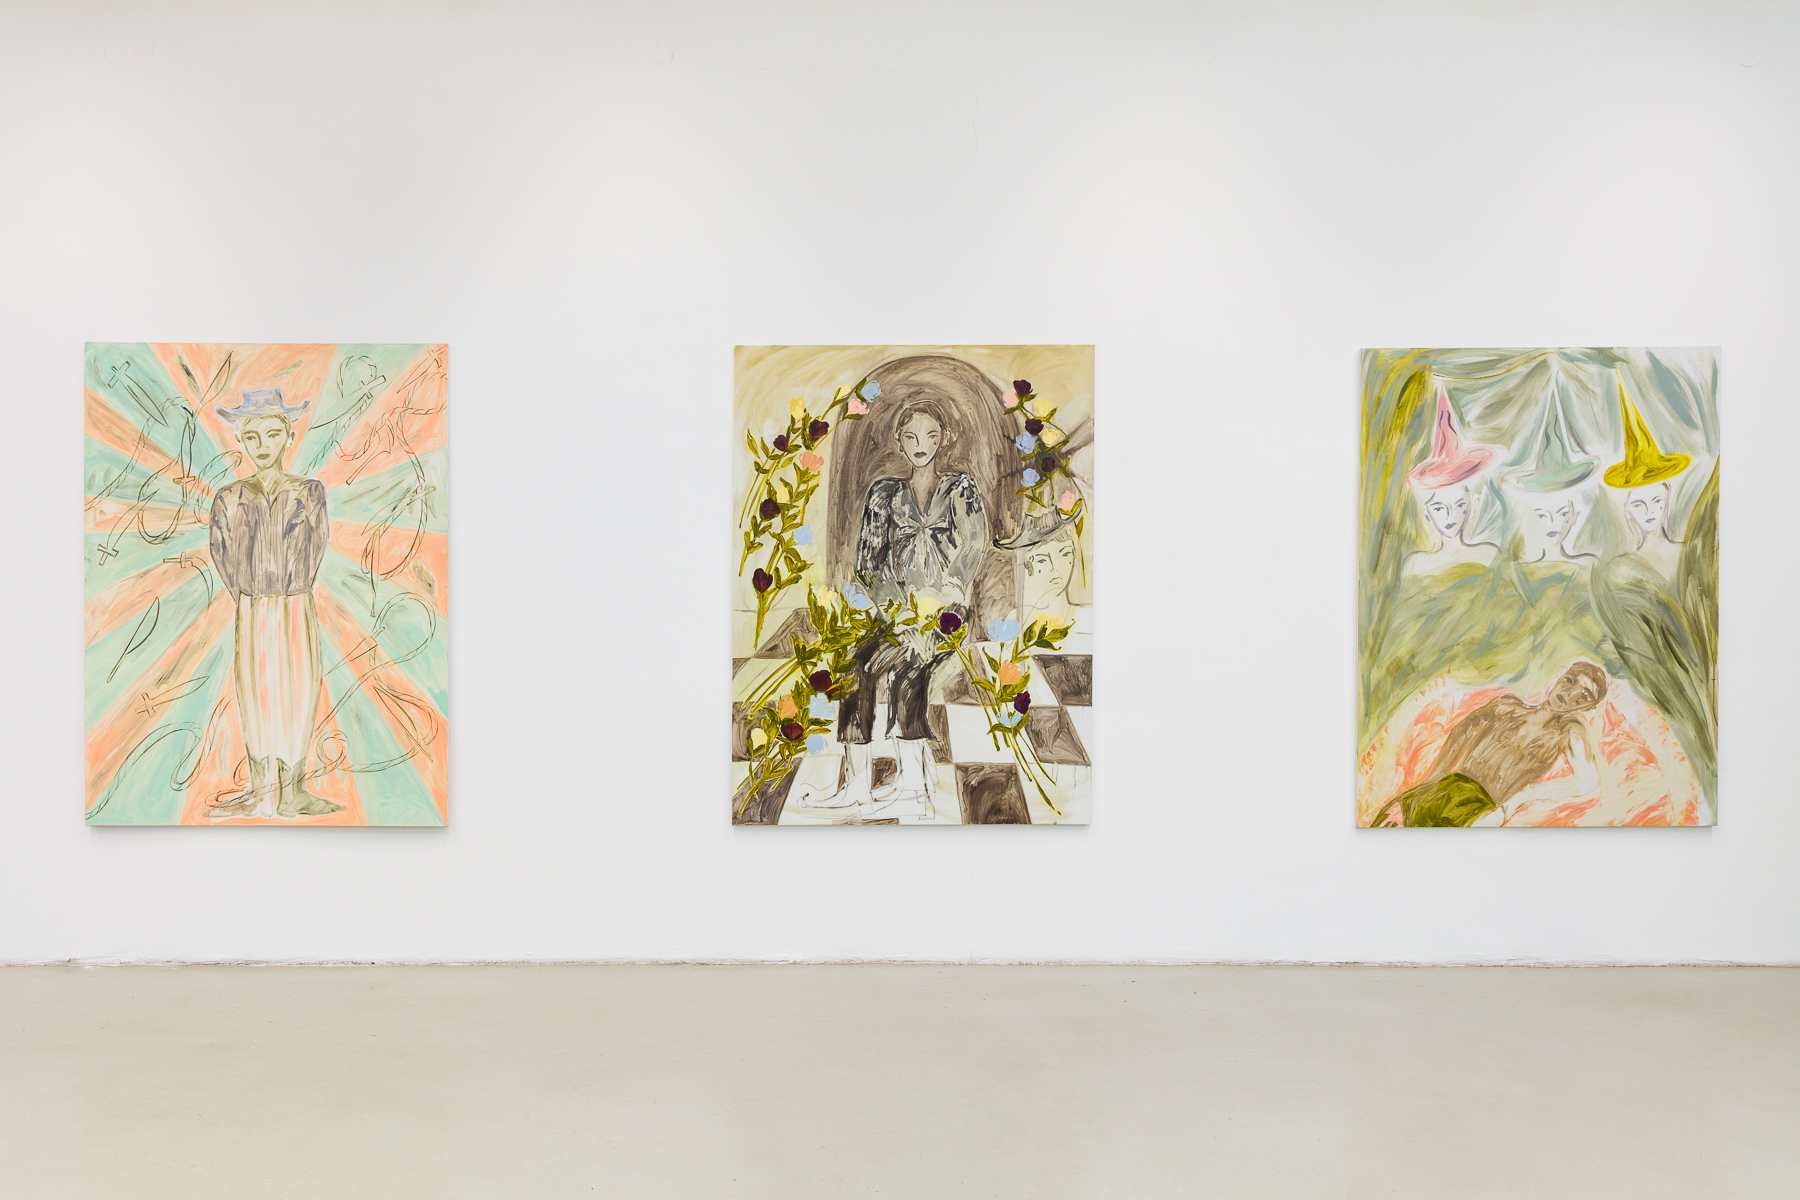 Installation view: If You Sat For Long Enough You Could See A Flower Bloom, 2020